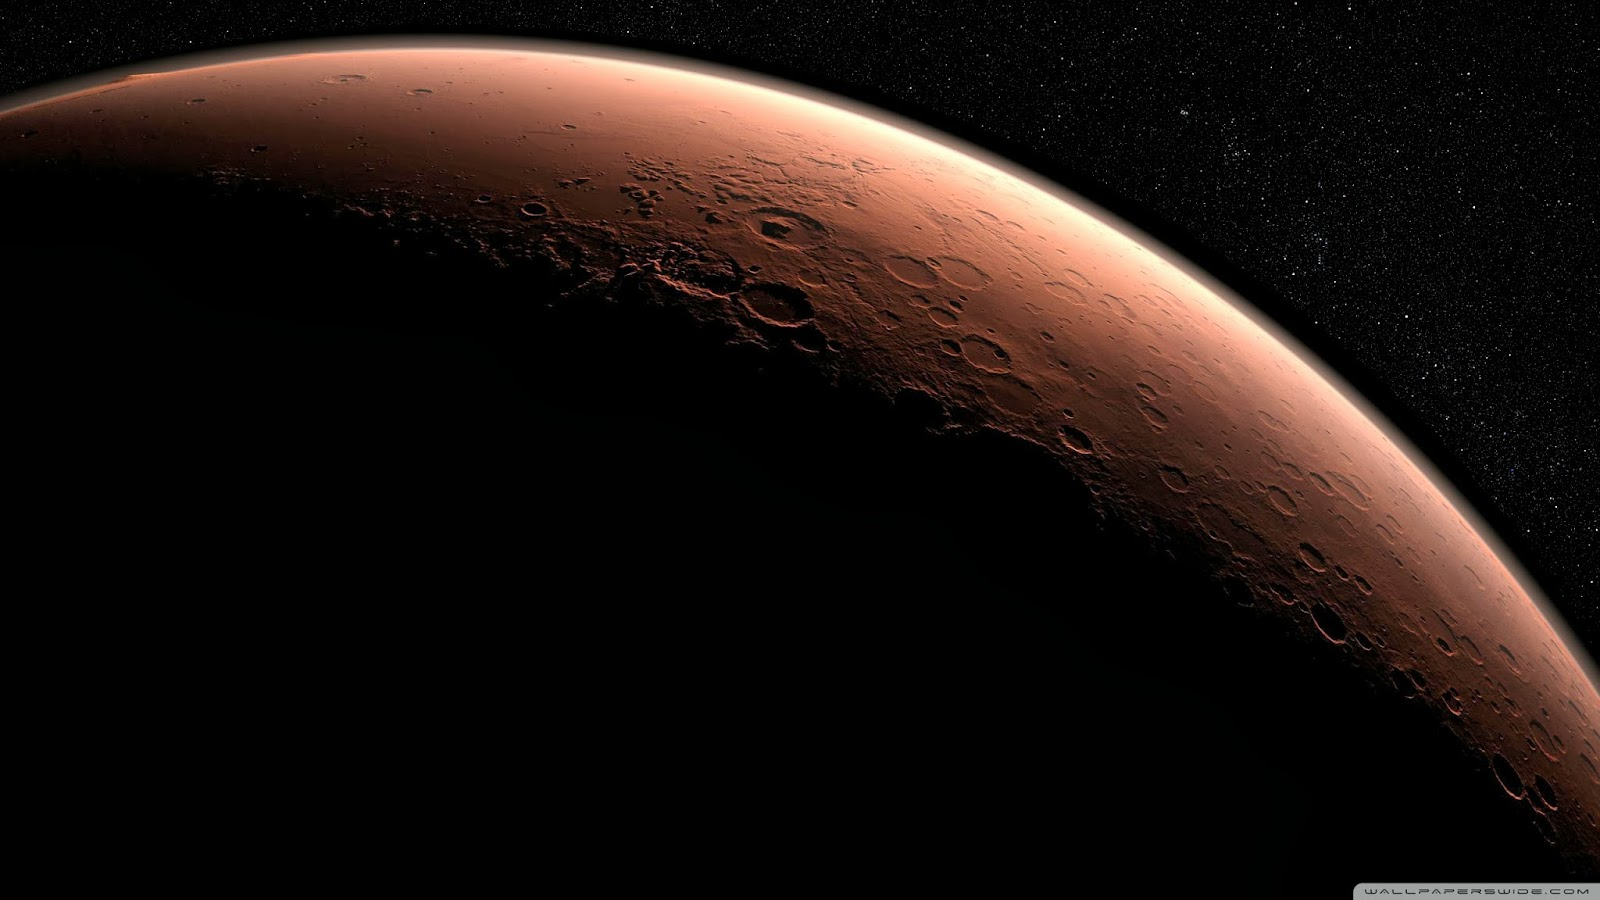 mars wallpaper 2560 1440 wallpapers